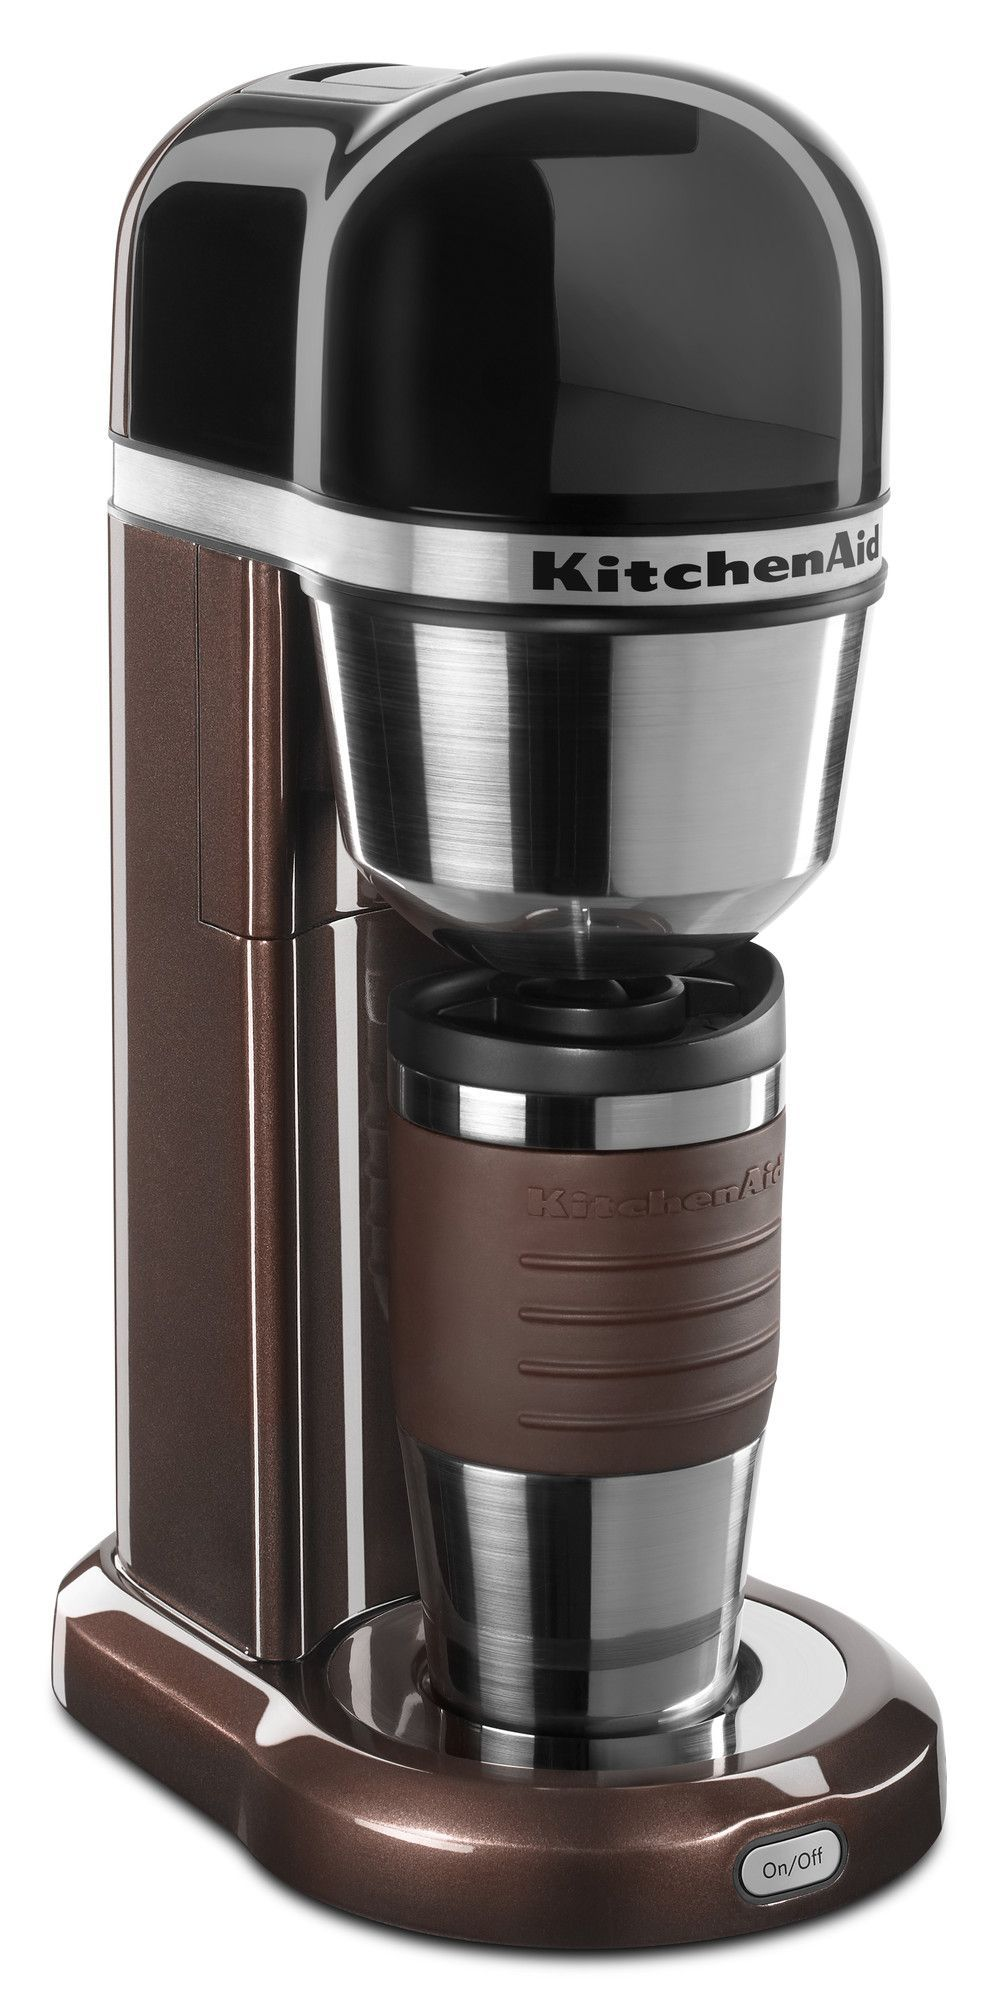 Kitchenaid Personal 4 Cup Coffee Maker 4 Cup Coffee Maker Capsule Coffee Machine Kitchen Aid Coffee Maker